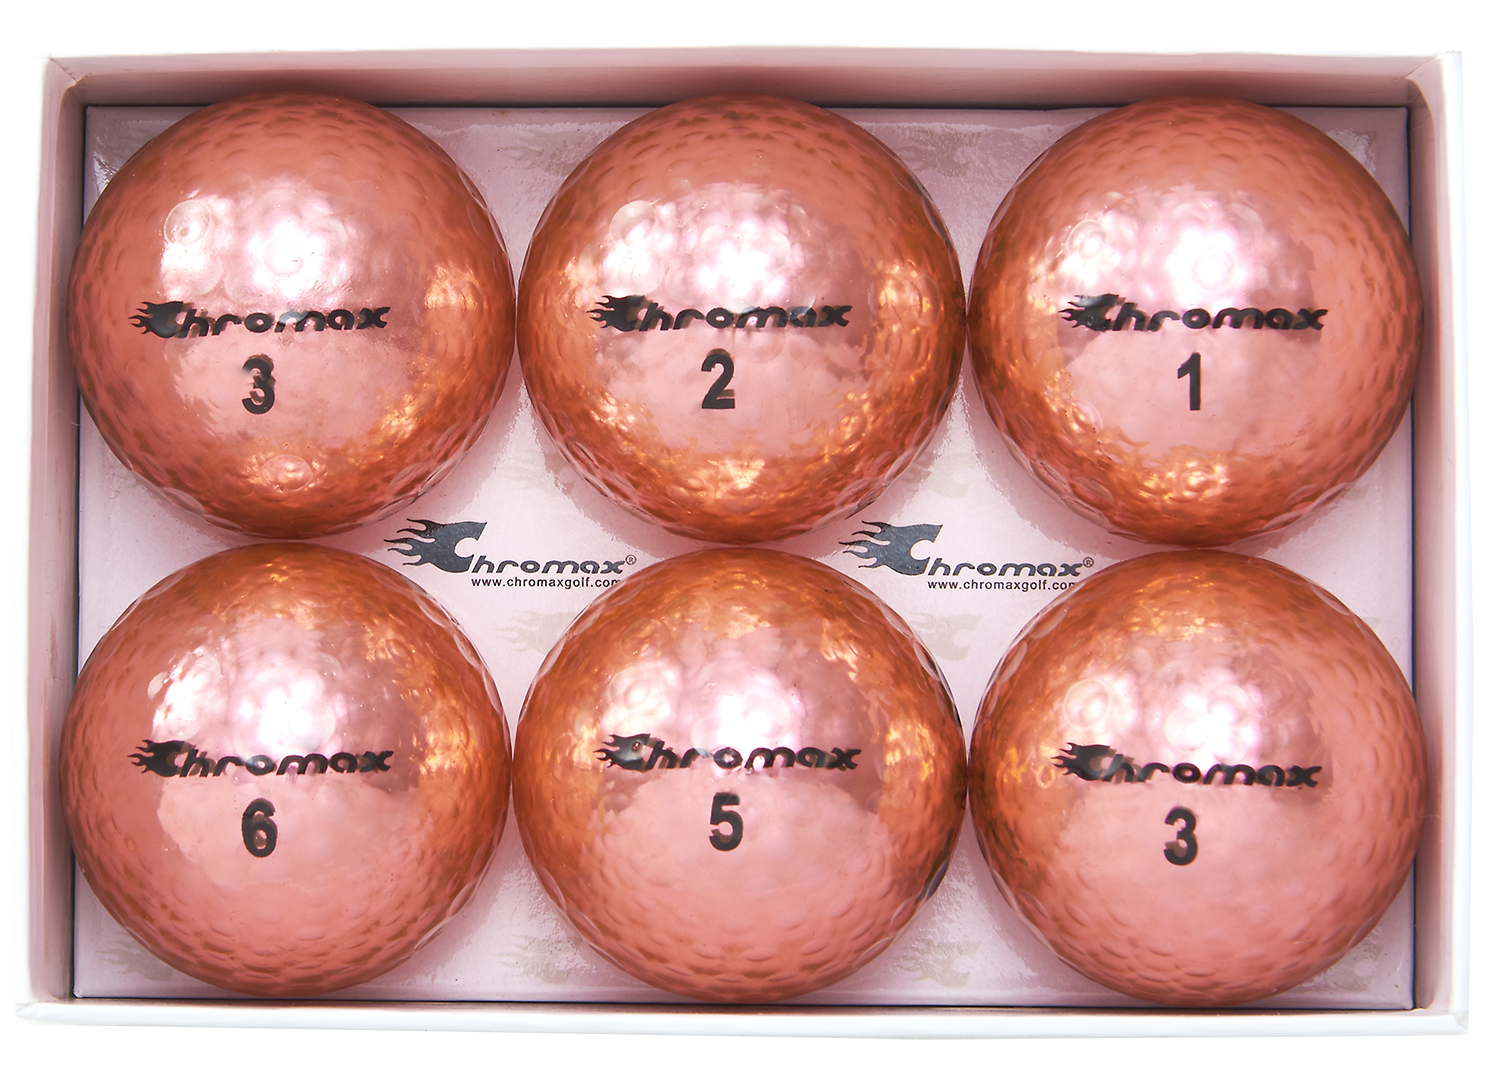 Chromax pink golf balls M5 6-pack